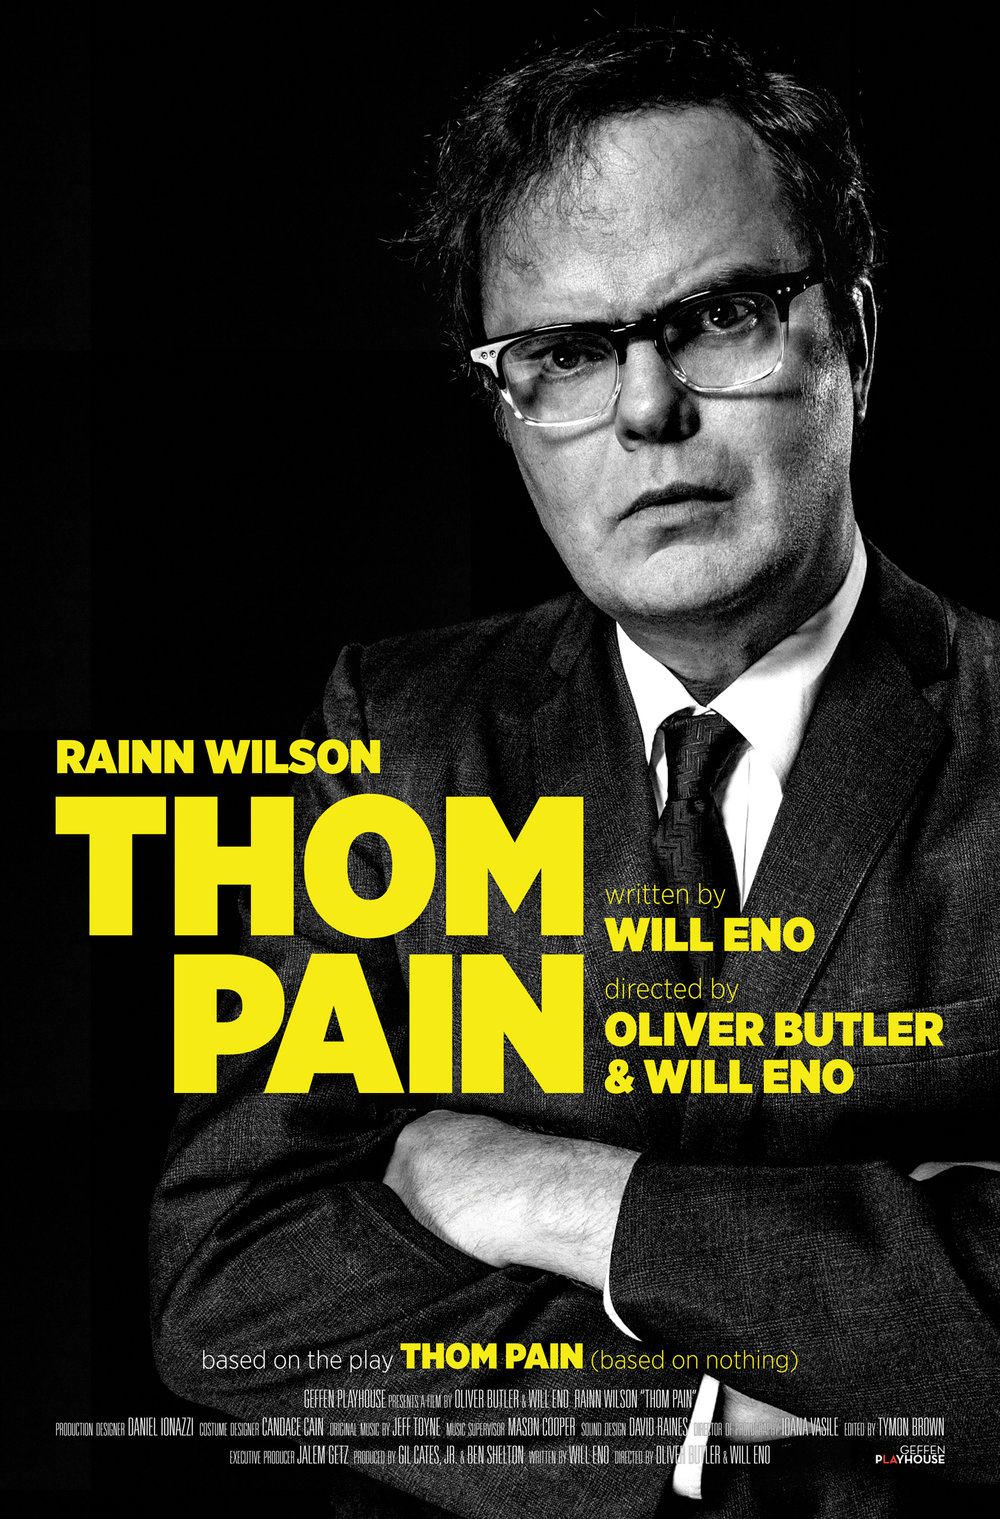 Special Event — screening& discussion with Rainn Wilson - Courtesy of Geffen Playhouse & Broadway HDThom Pain is just like you, except worse. One night, he finds himself on a stage, in the dark, in a theatre. In the audience are people who, just like him, were born and will die. Thom is going to try to make sense of it all. He's going to try to save his life, to save their life, to save your life - in that order. A camera crew captures the night, as various forces align to produce a reckless.June 11th, 7pmBjorklundenFestival or Premium Pass Required